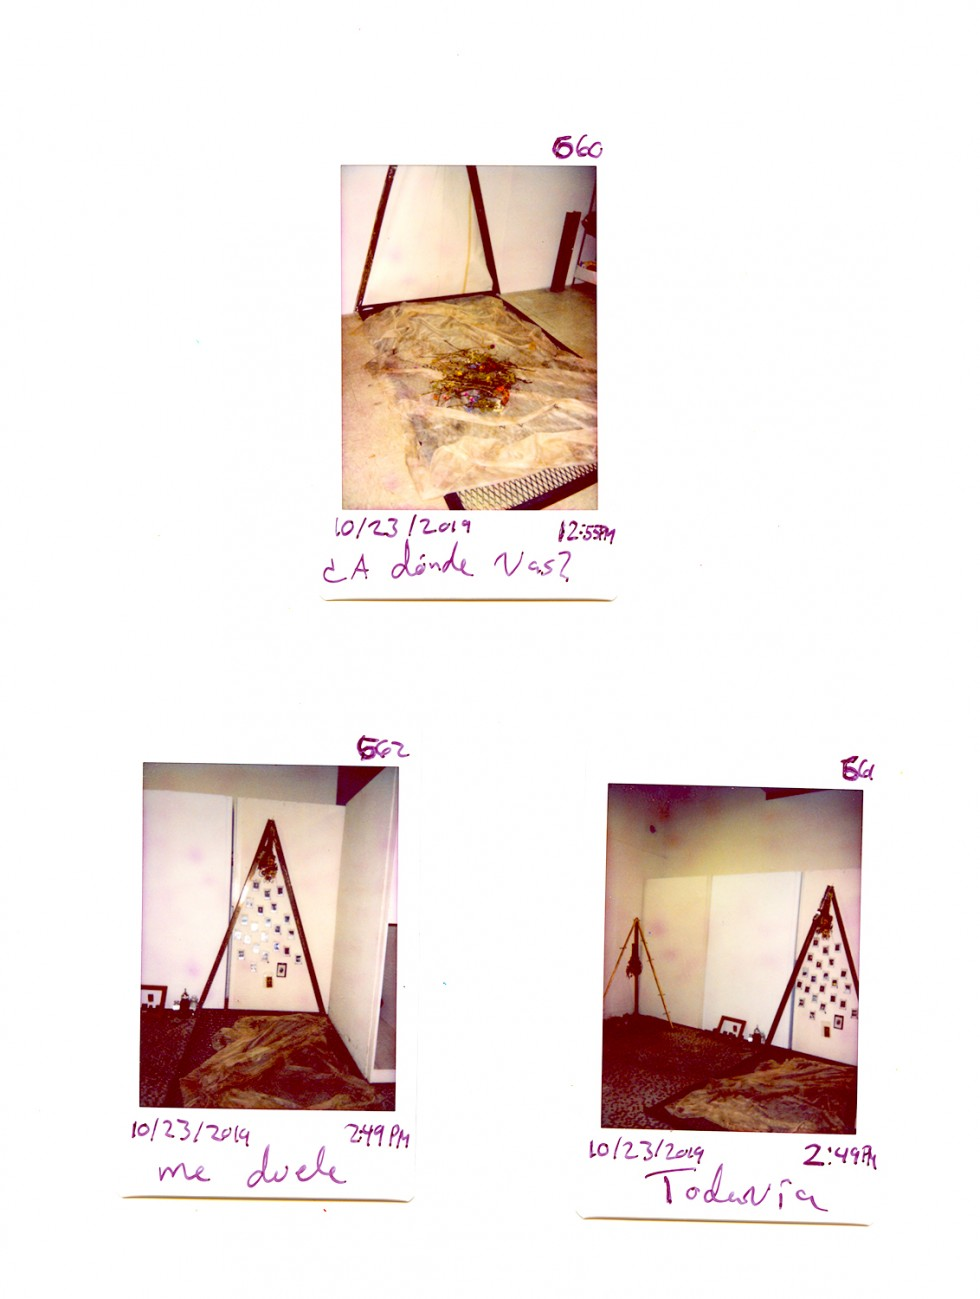 Tripod like structure with dead flowers hanging like a pendulum over a circle of soil with a photograph in the middle